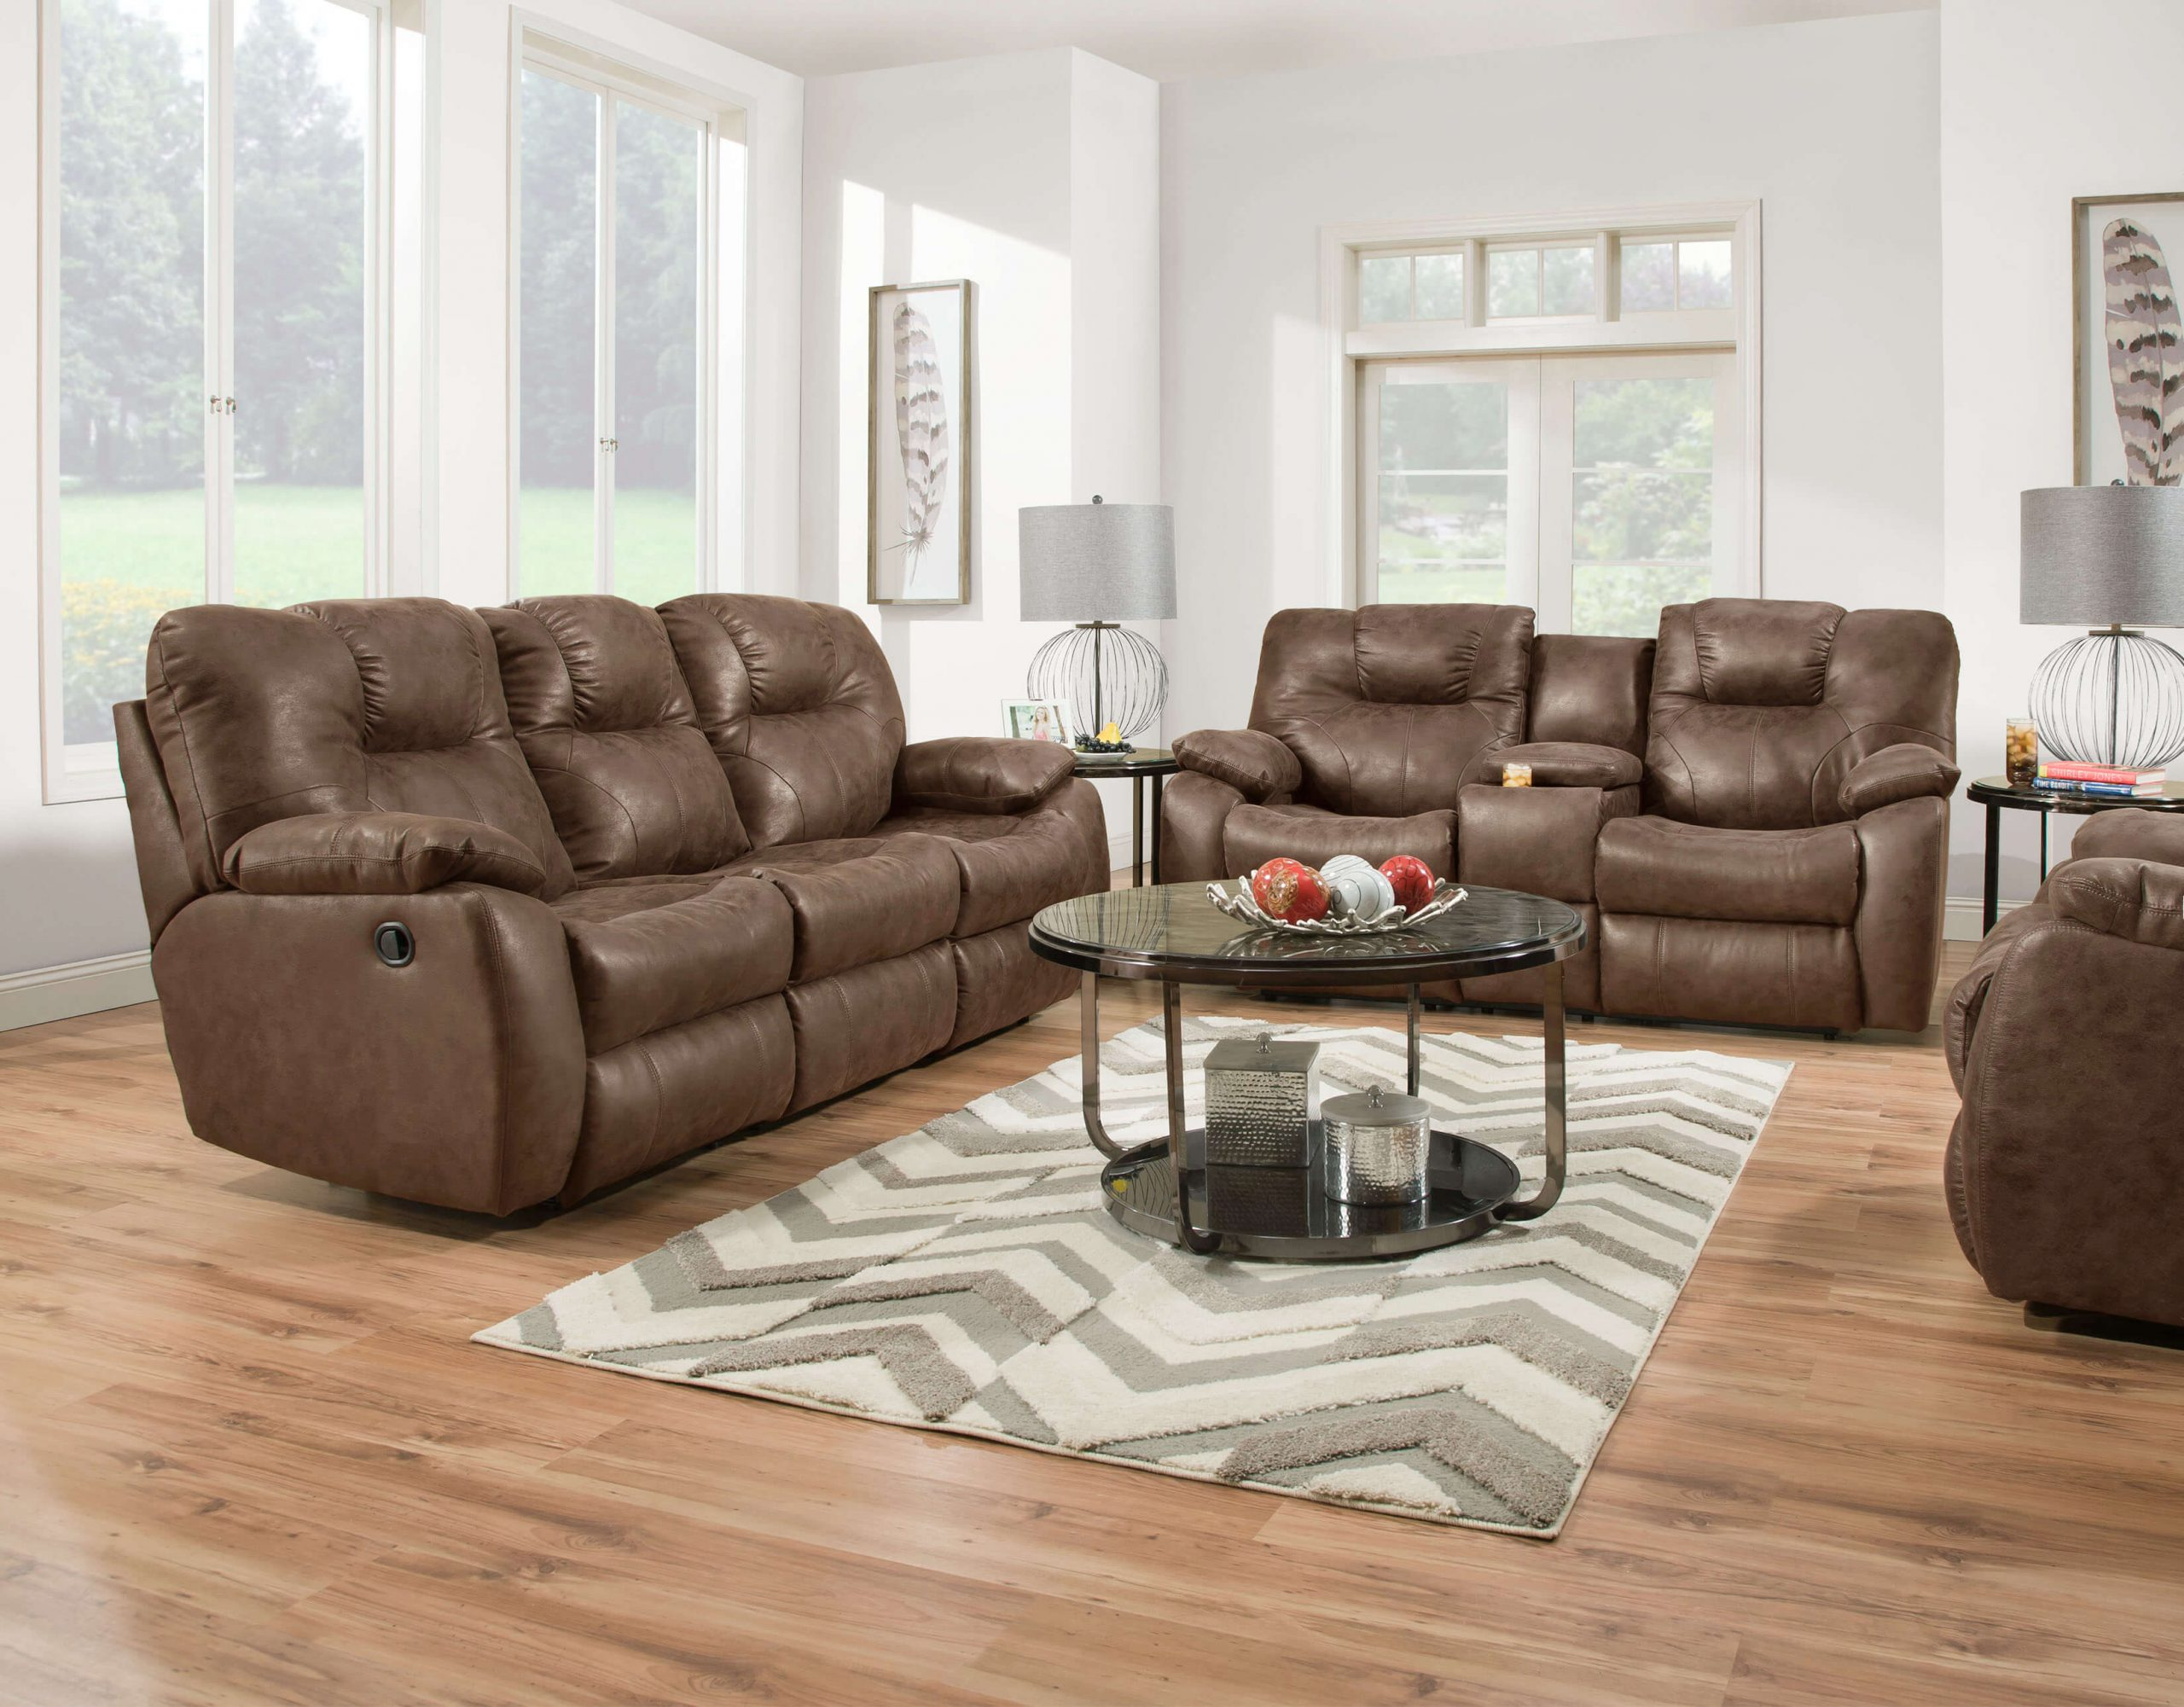 838-avalon-in-240-21-empire-mocha-sofa-love-rs-scaled